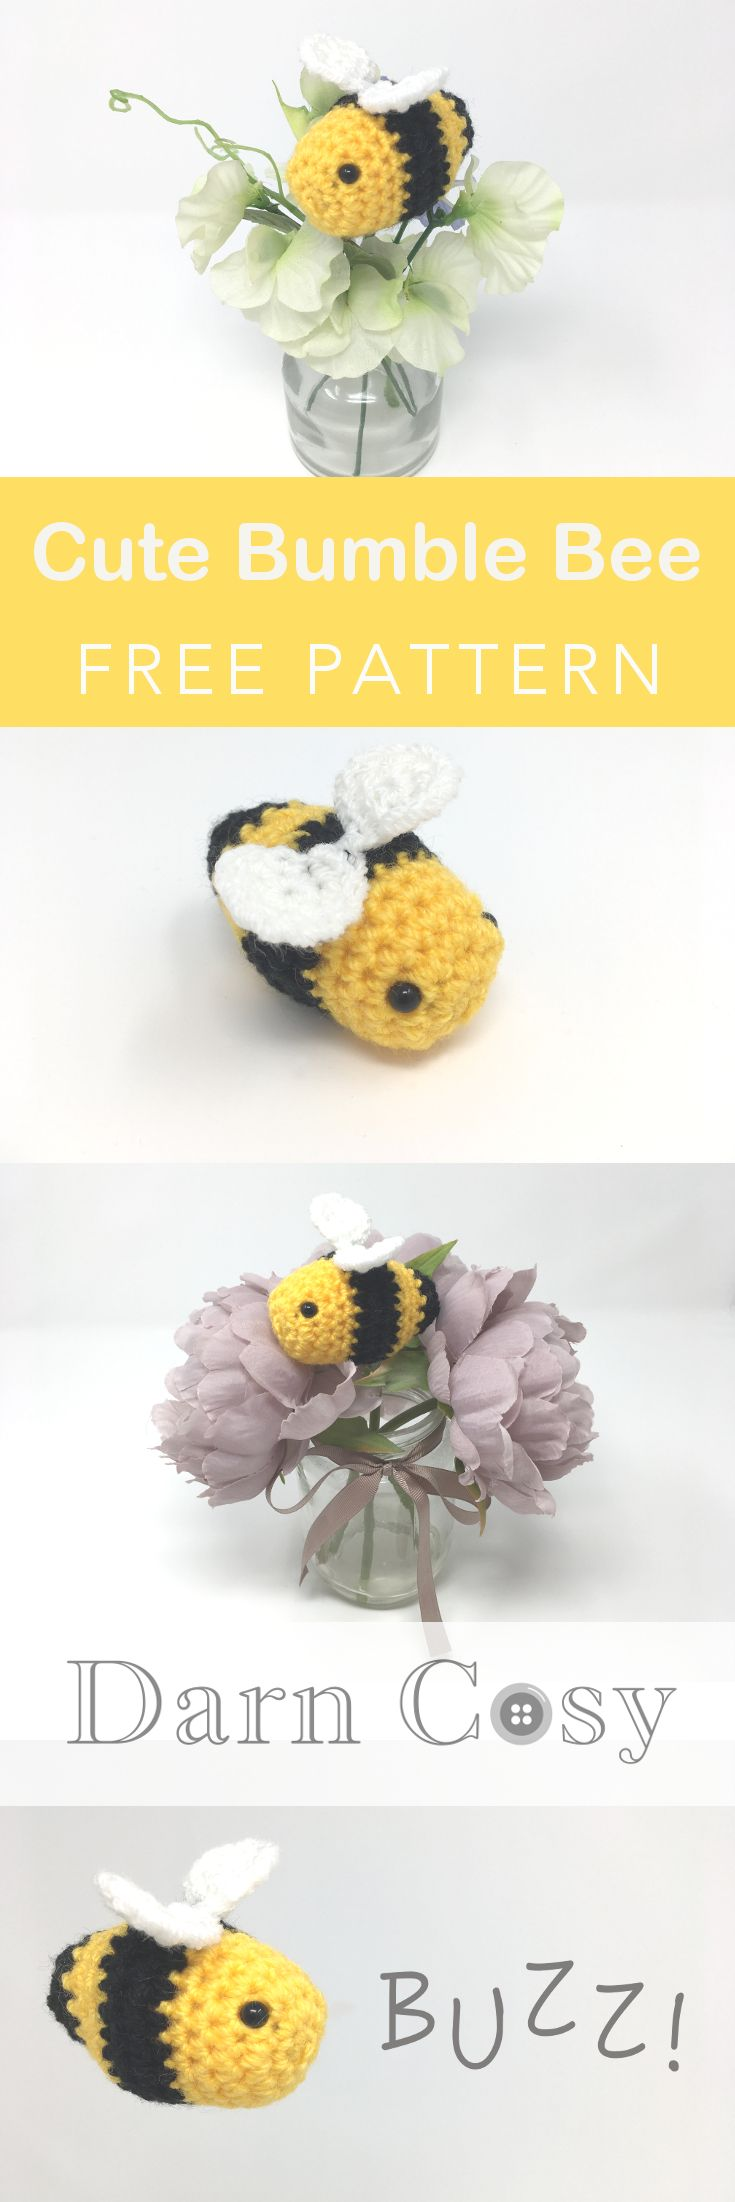 Cute Bumble Bee Amigurumi - Free Crochet Pattern! | Pinterest ...